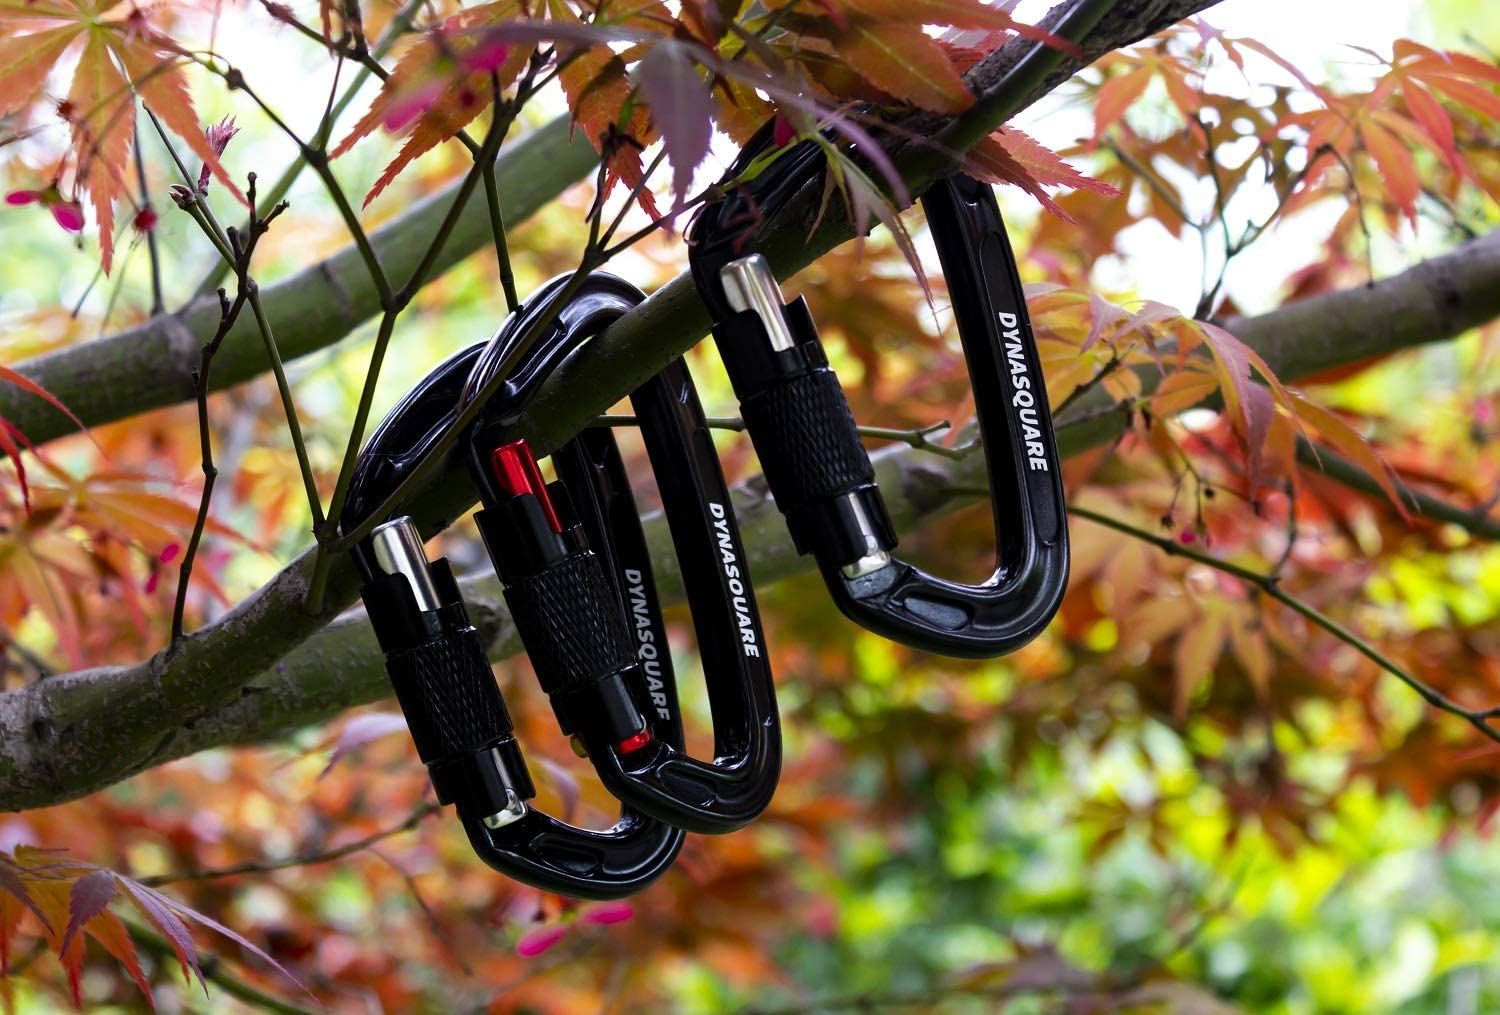 5400 lbs DYNASQUARE Auto Locking Carabiner Clips Great for Climbing 3 Pack Rock Climbing Carabiner Twist Lock Mountaineer Camping Hammock 24KN Outdoor Equipment